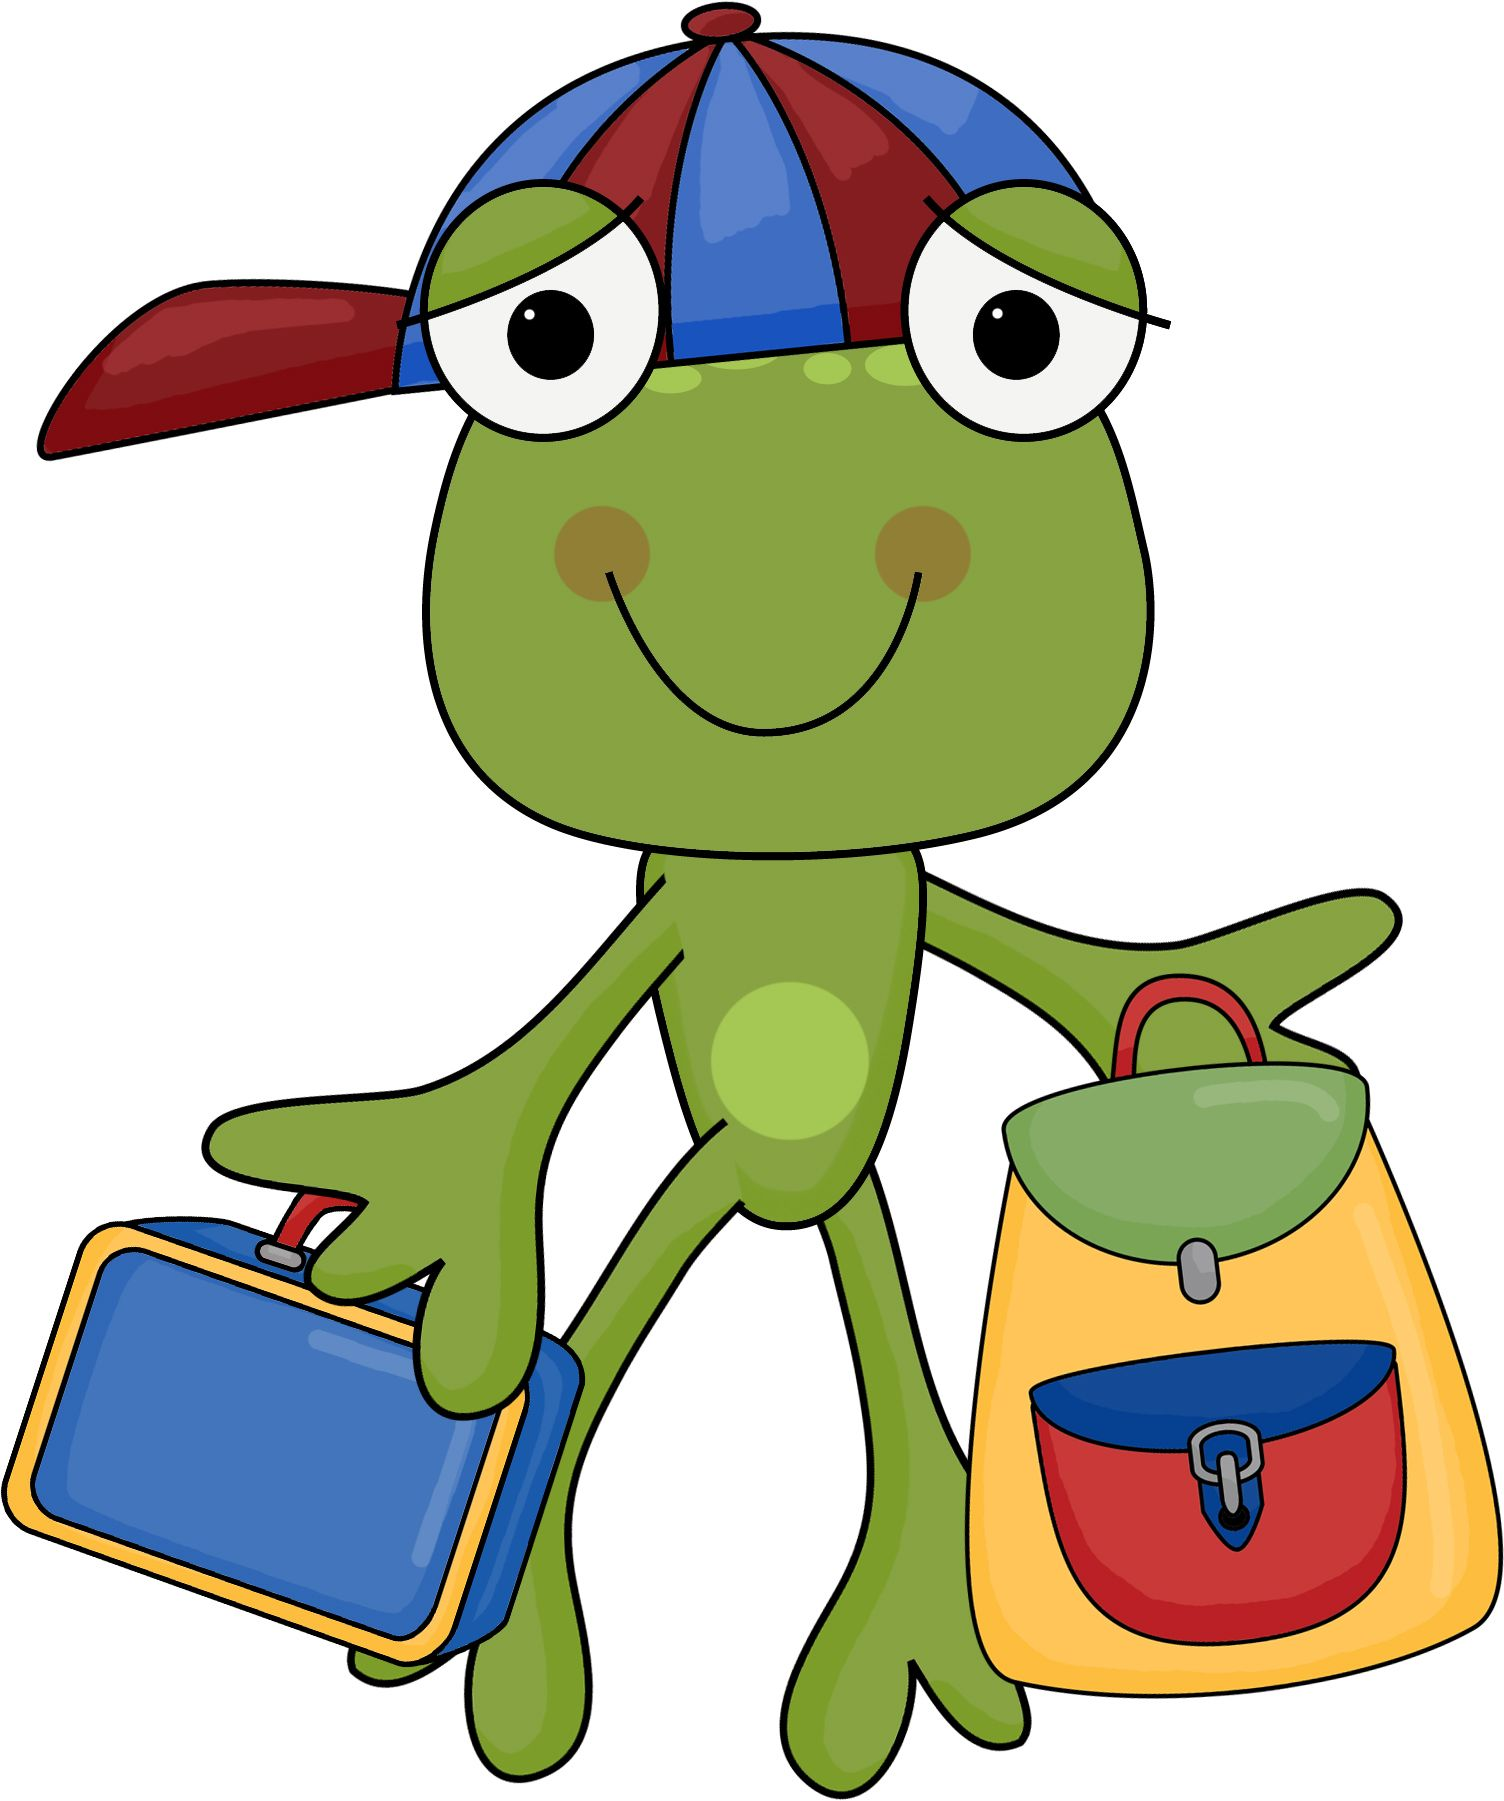 frogs school clipart school days free frog frogs pinterest rh pinterest com free frog clipart for teachers